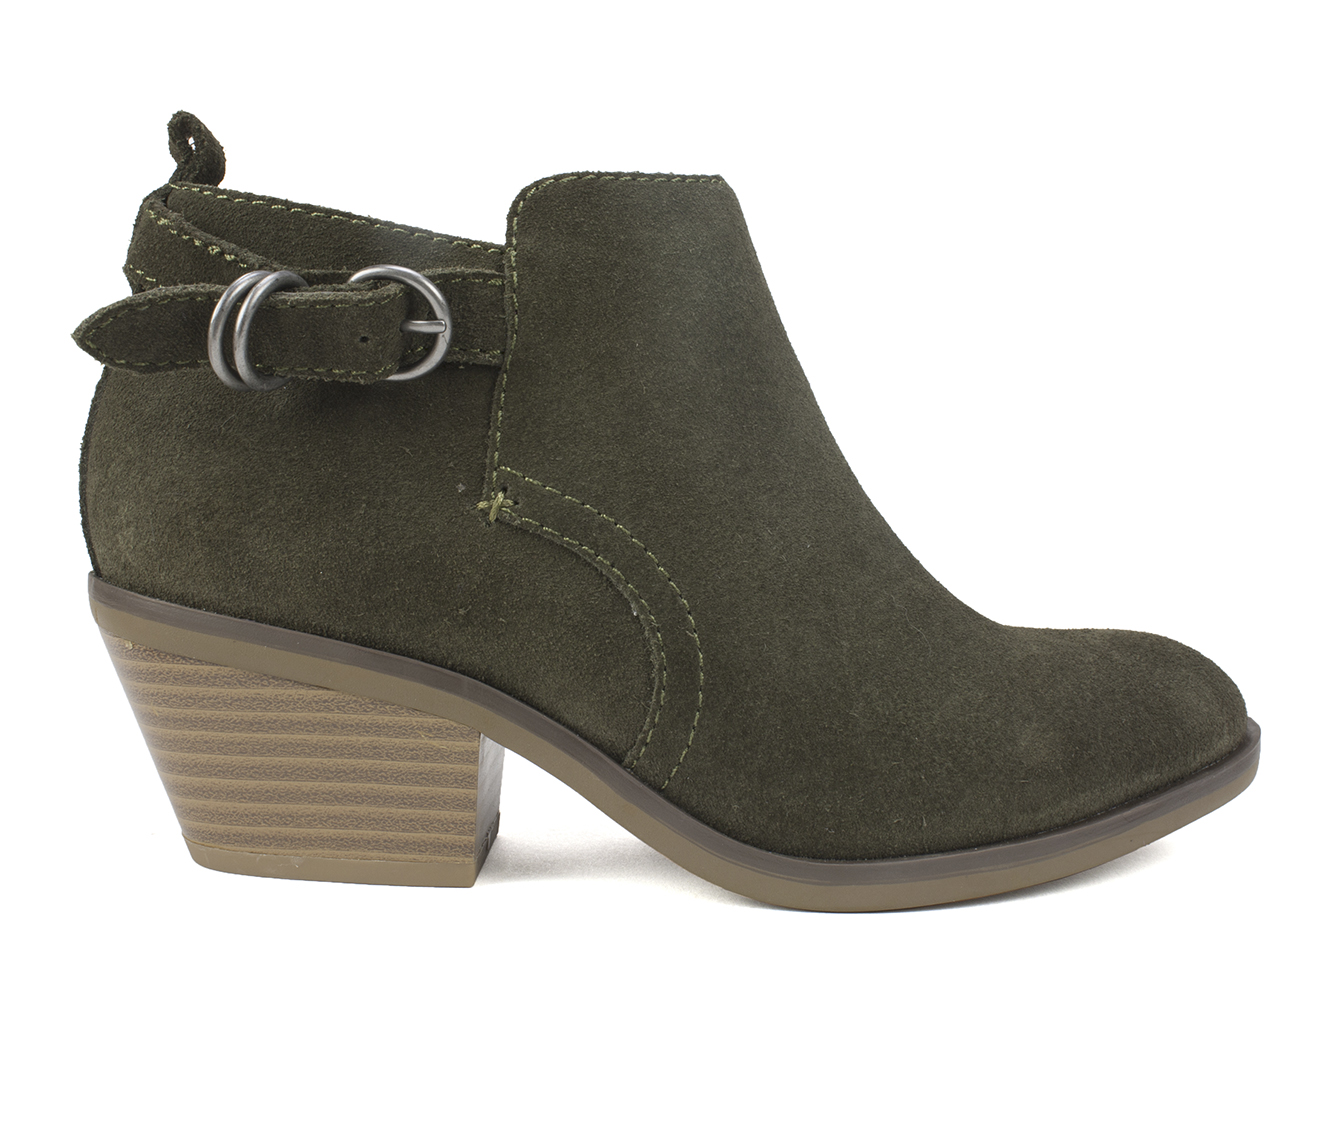 White Mountain Sadie Women's Boots (Green - Suede)